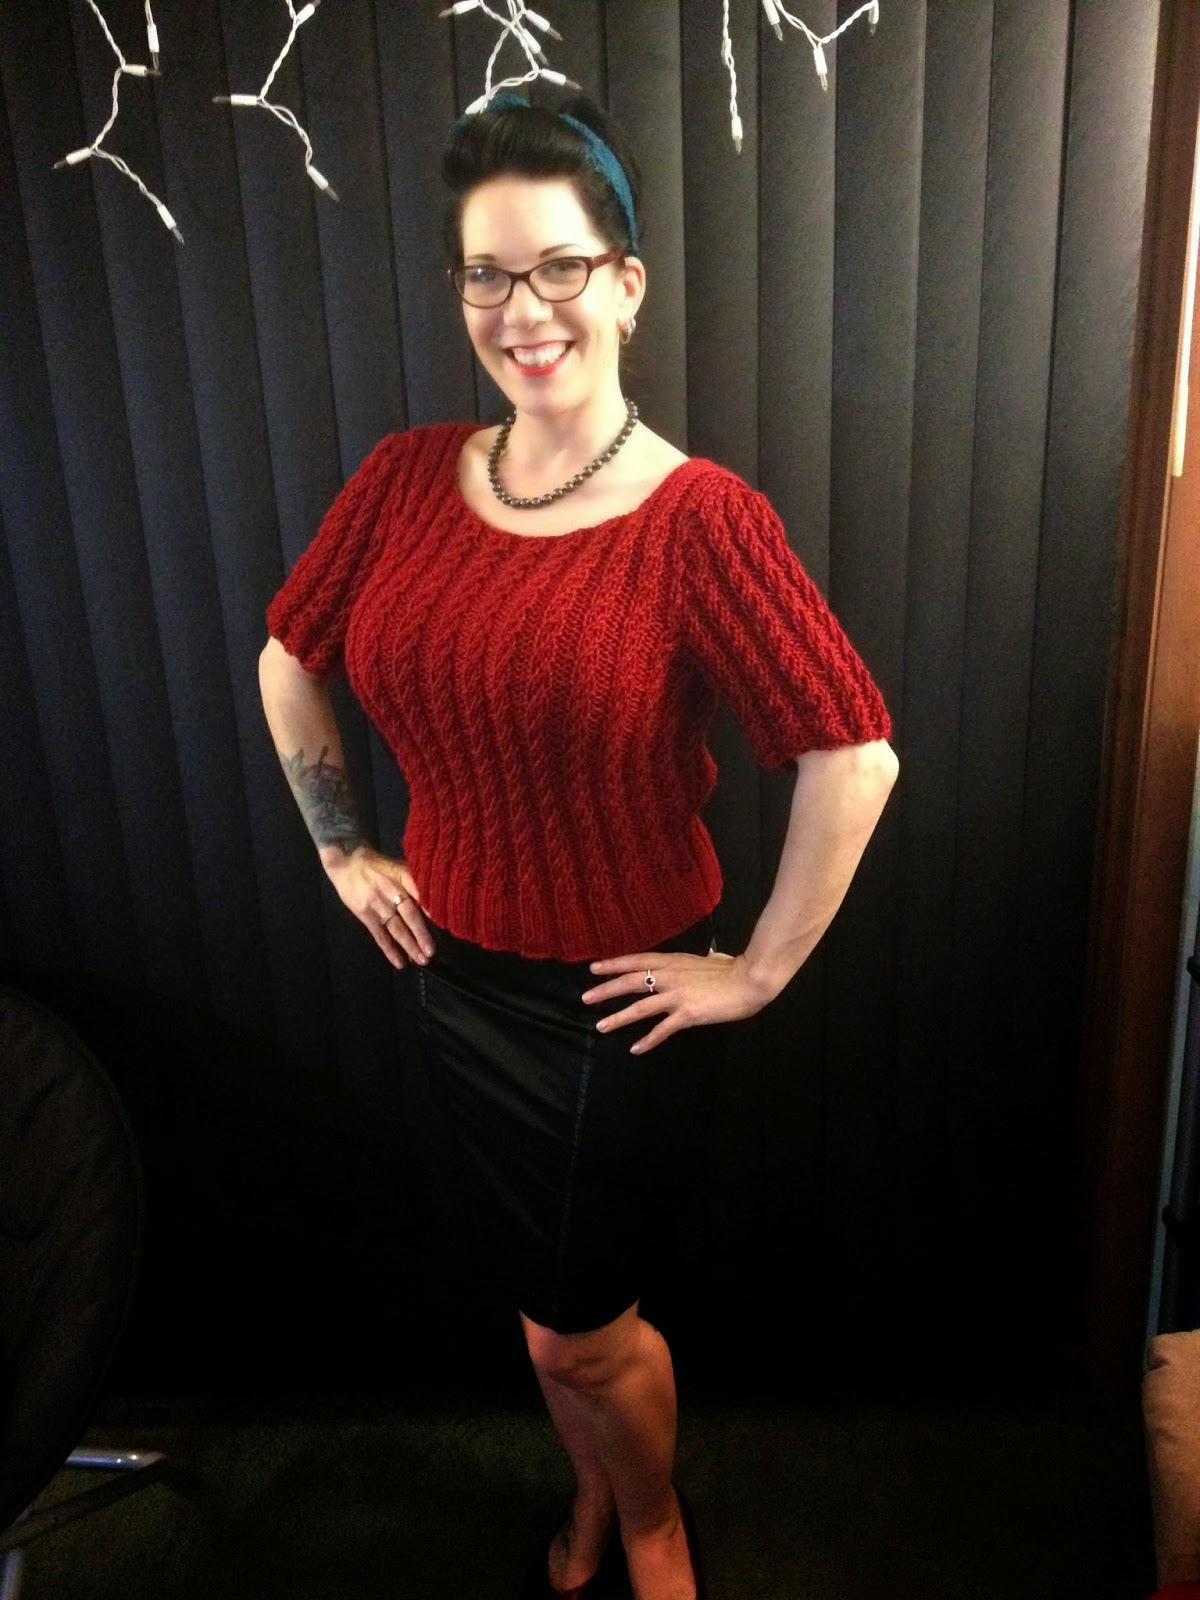 40's sweater - She Knits in Pearls